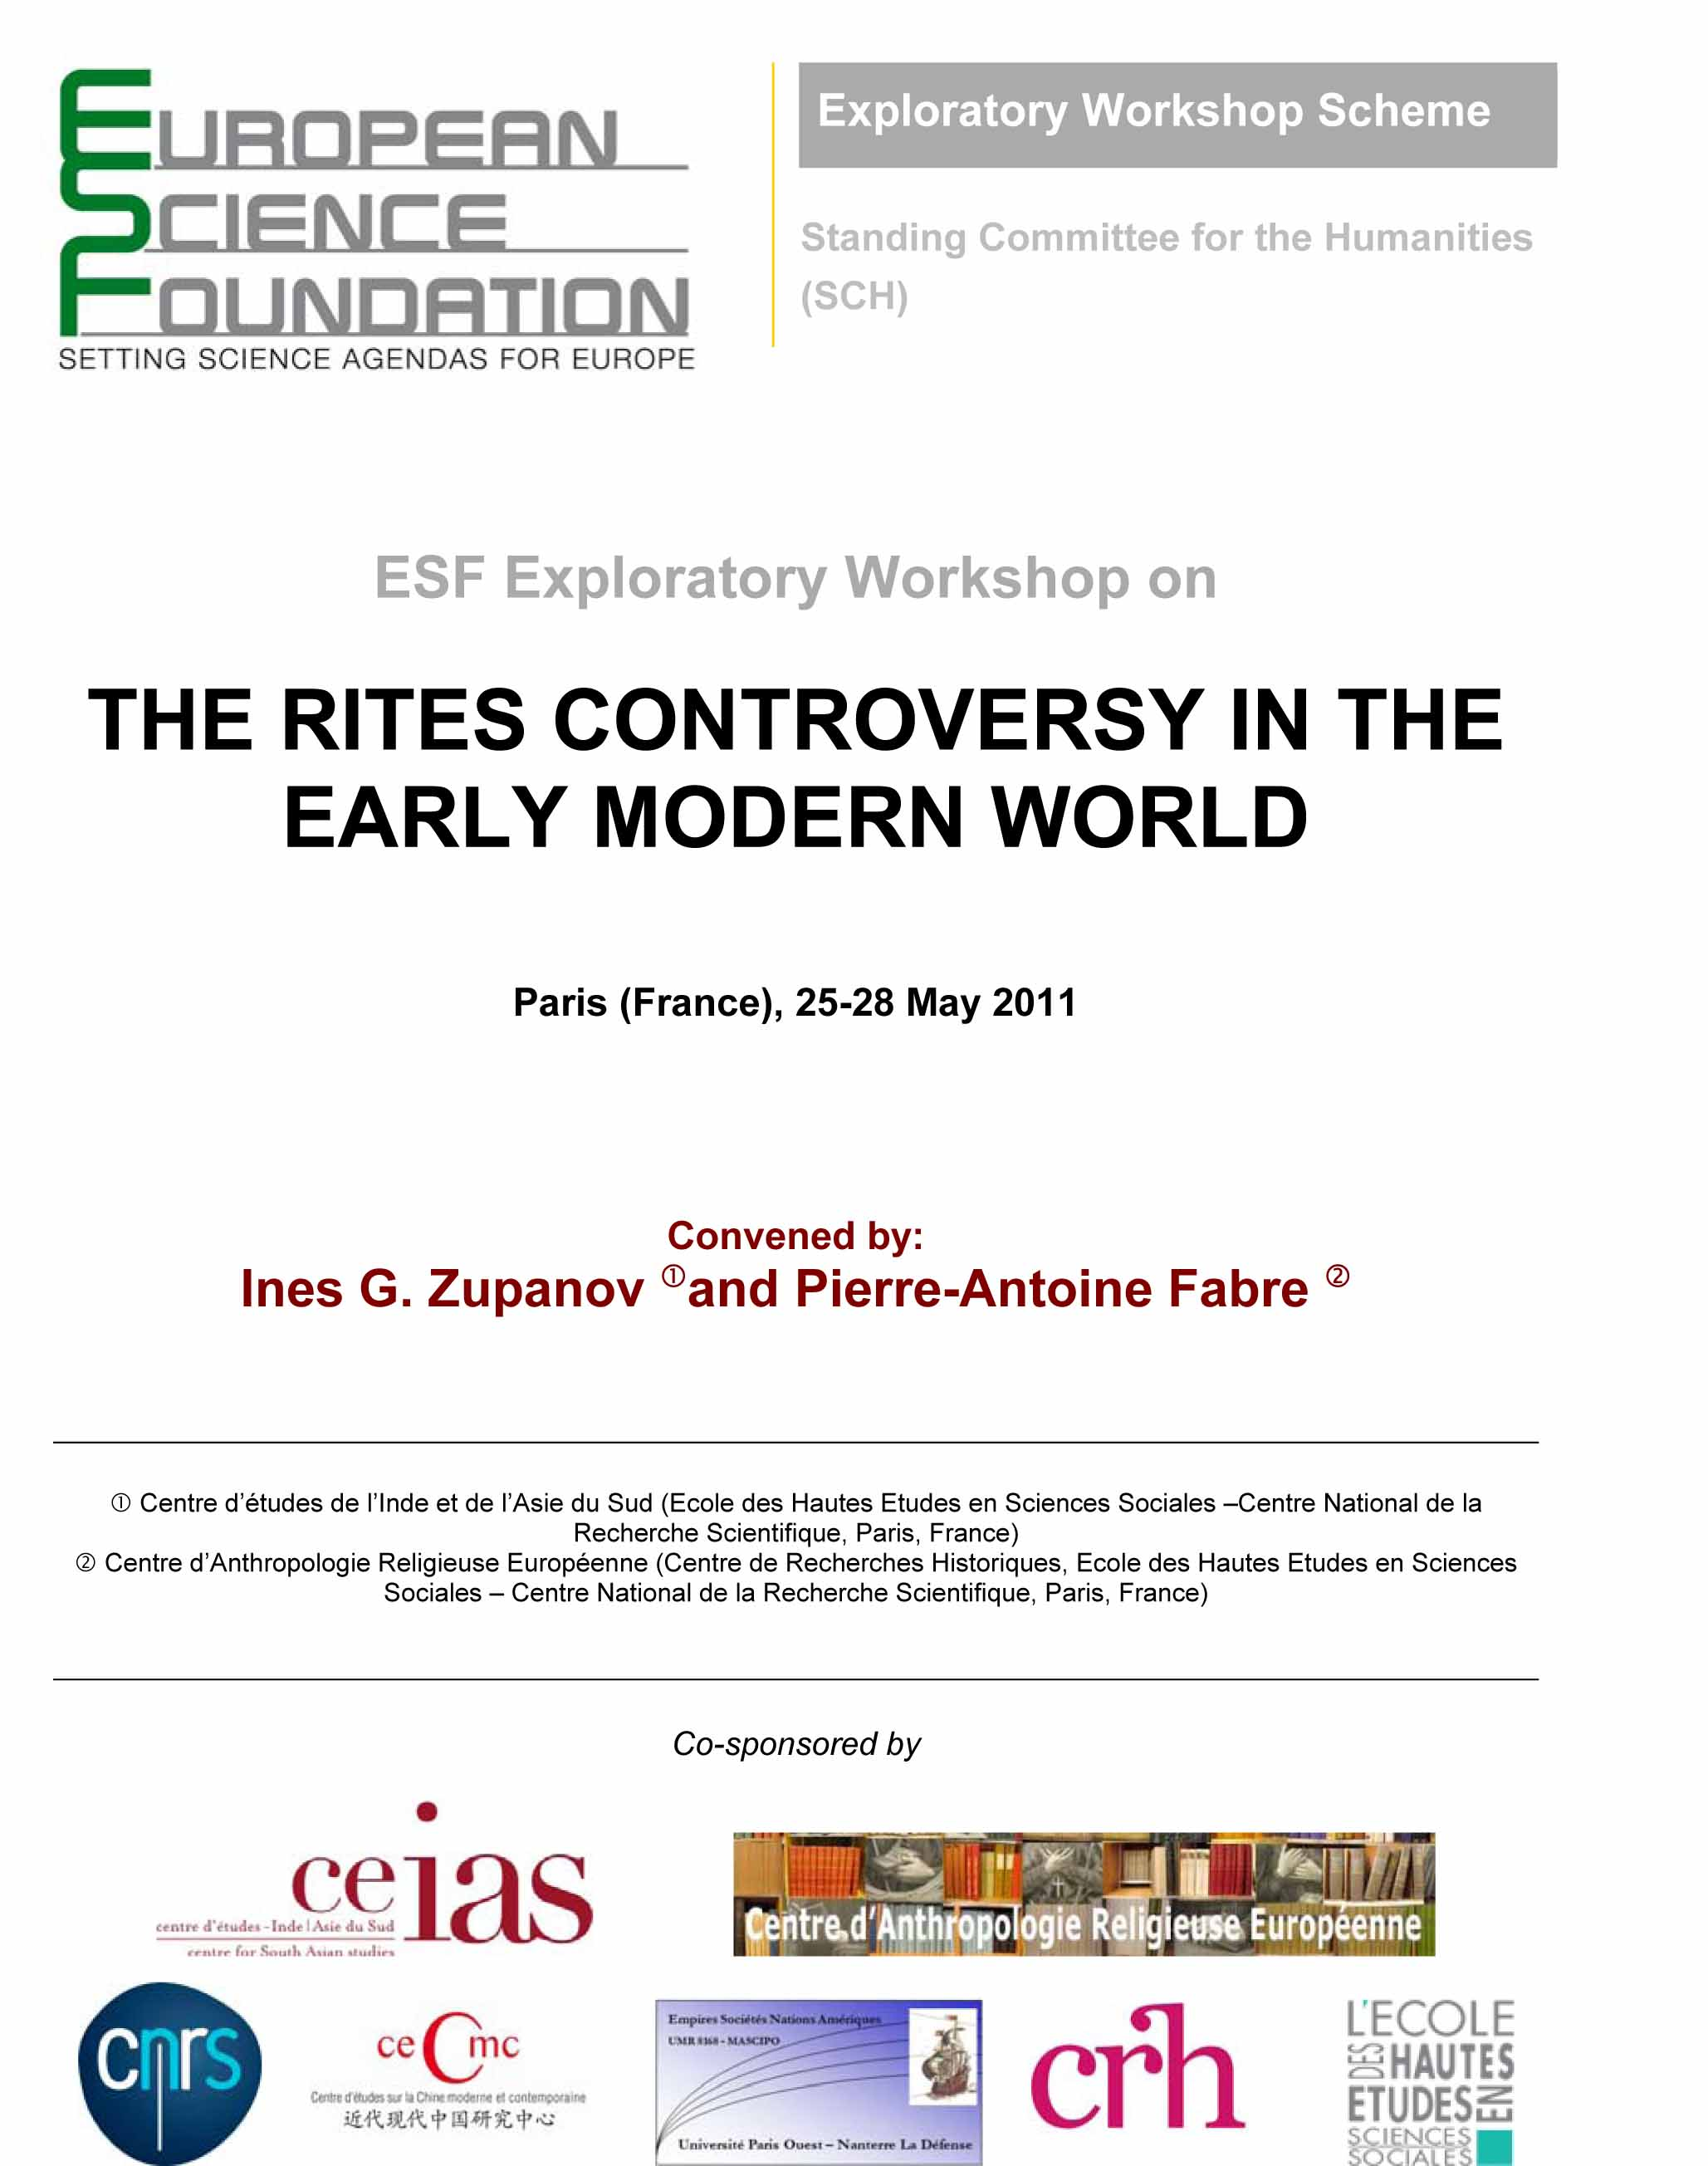 The Rites Controversy in the Early Modern World